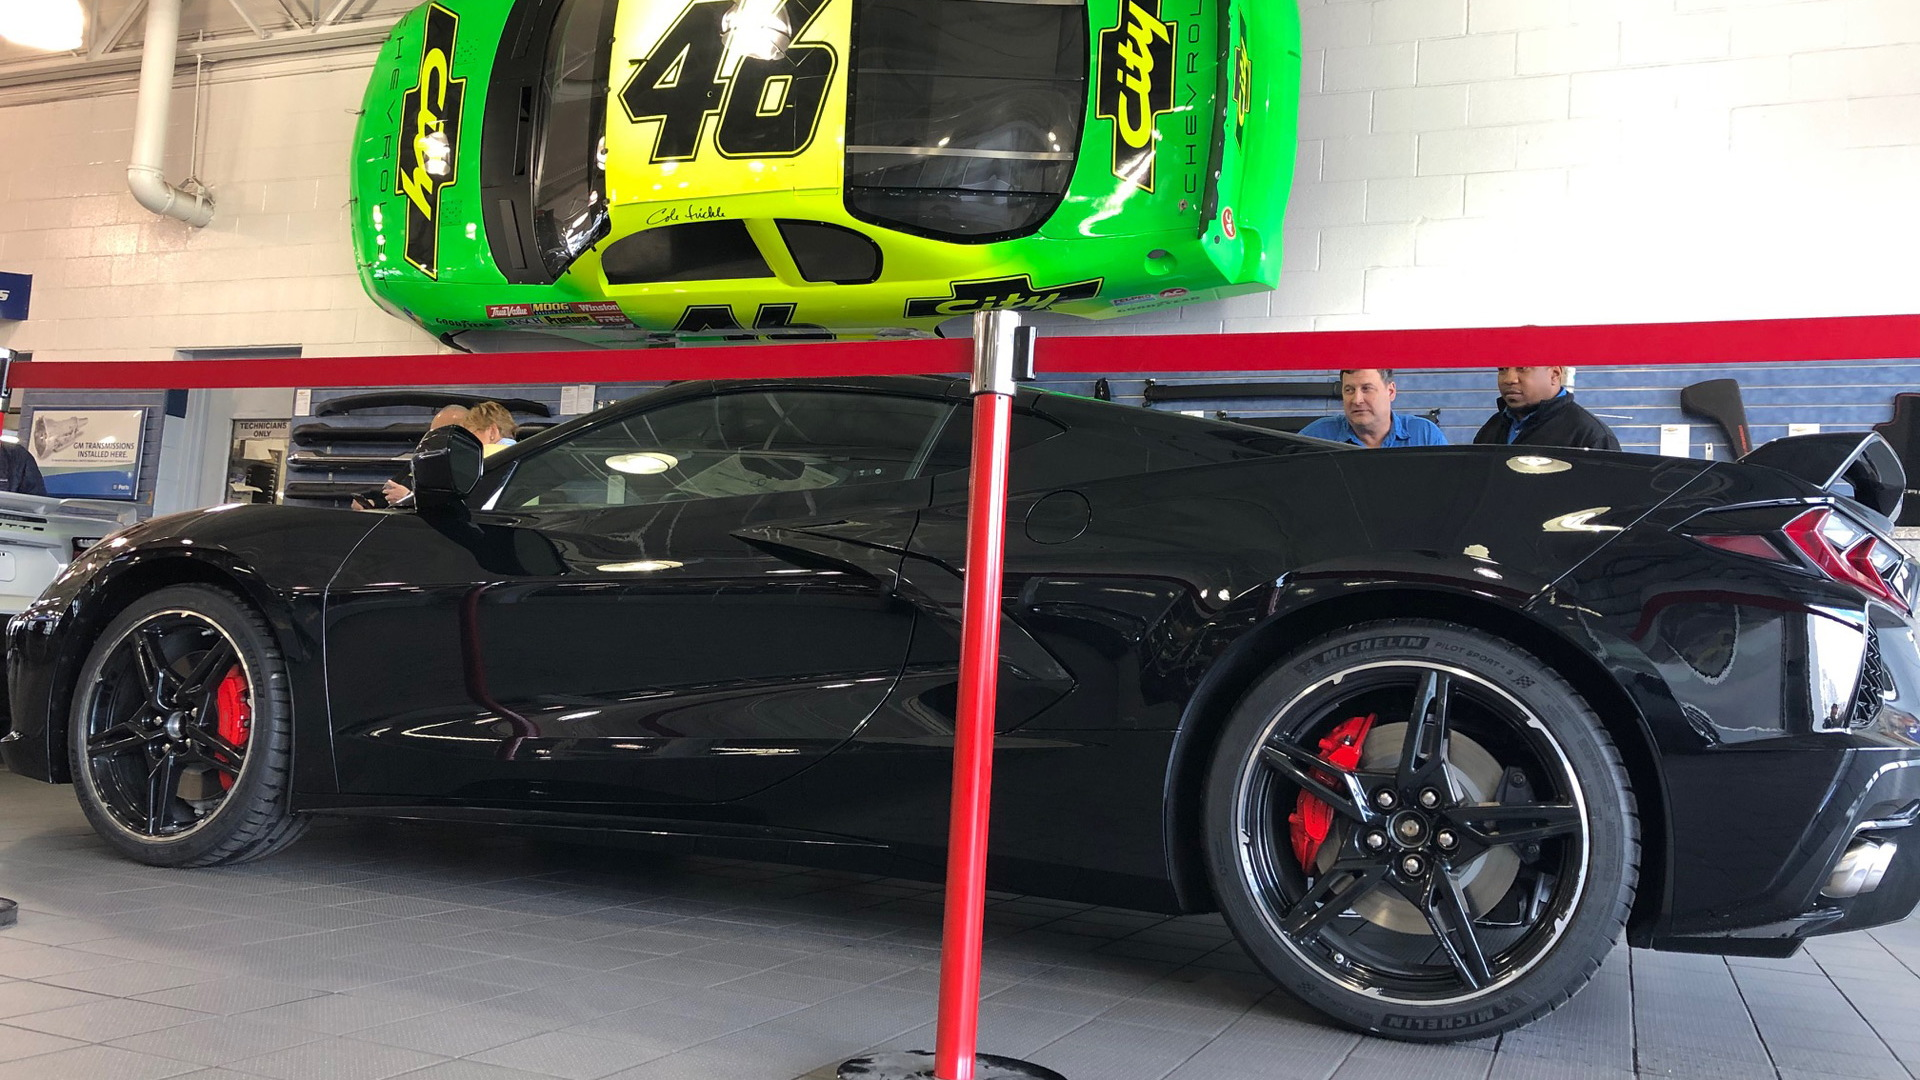 Delivery of 2020 Chevrolet Corvette Stingray with VIN ending in 001 at Rick Hendrick City Chevrolet